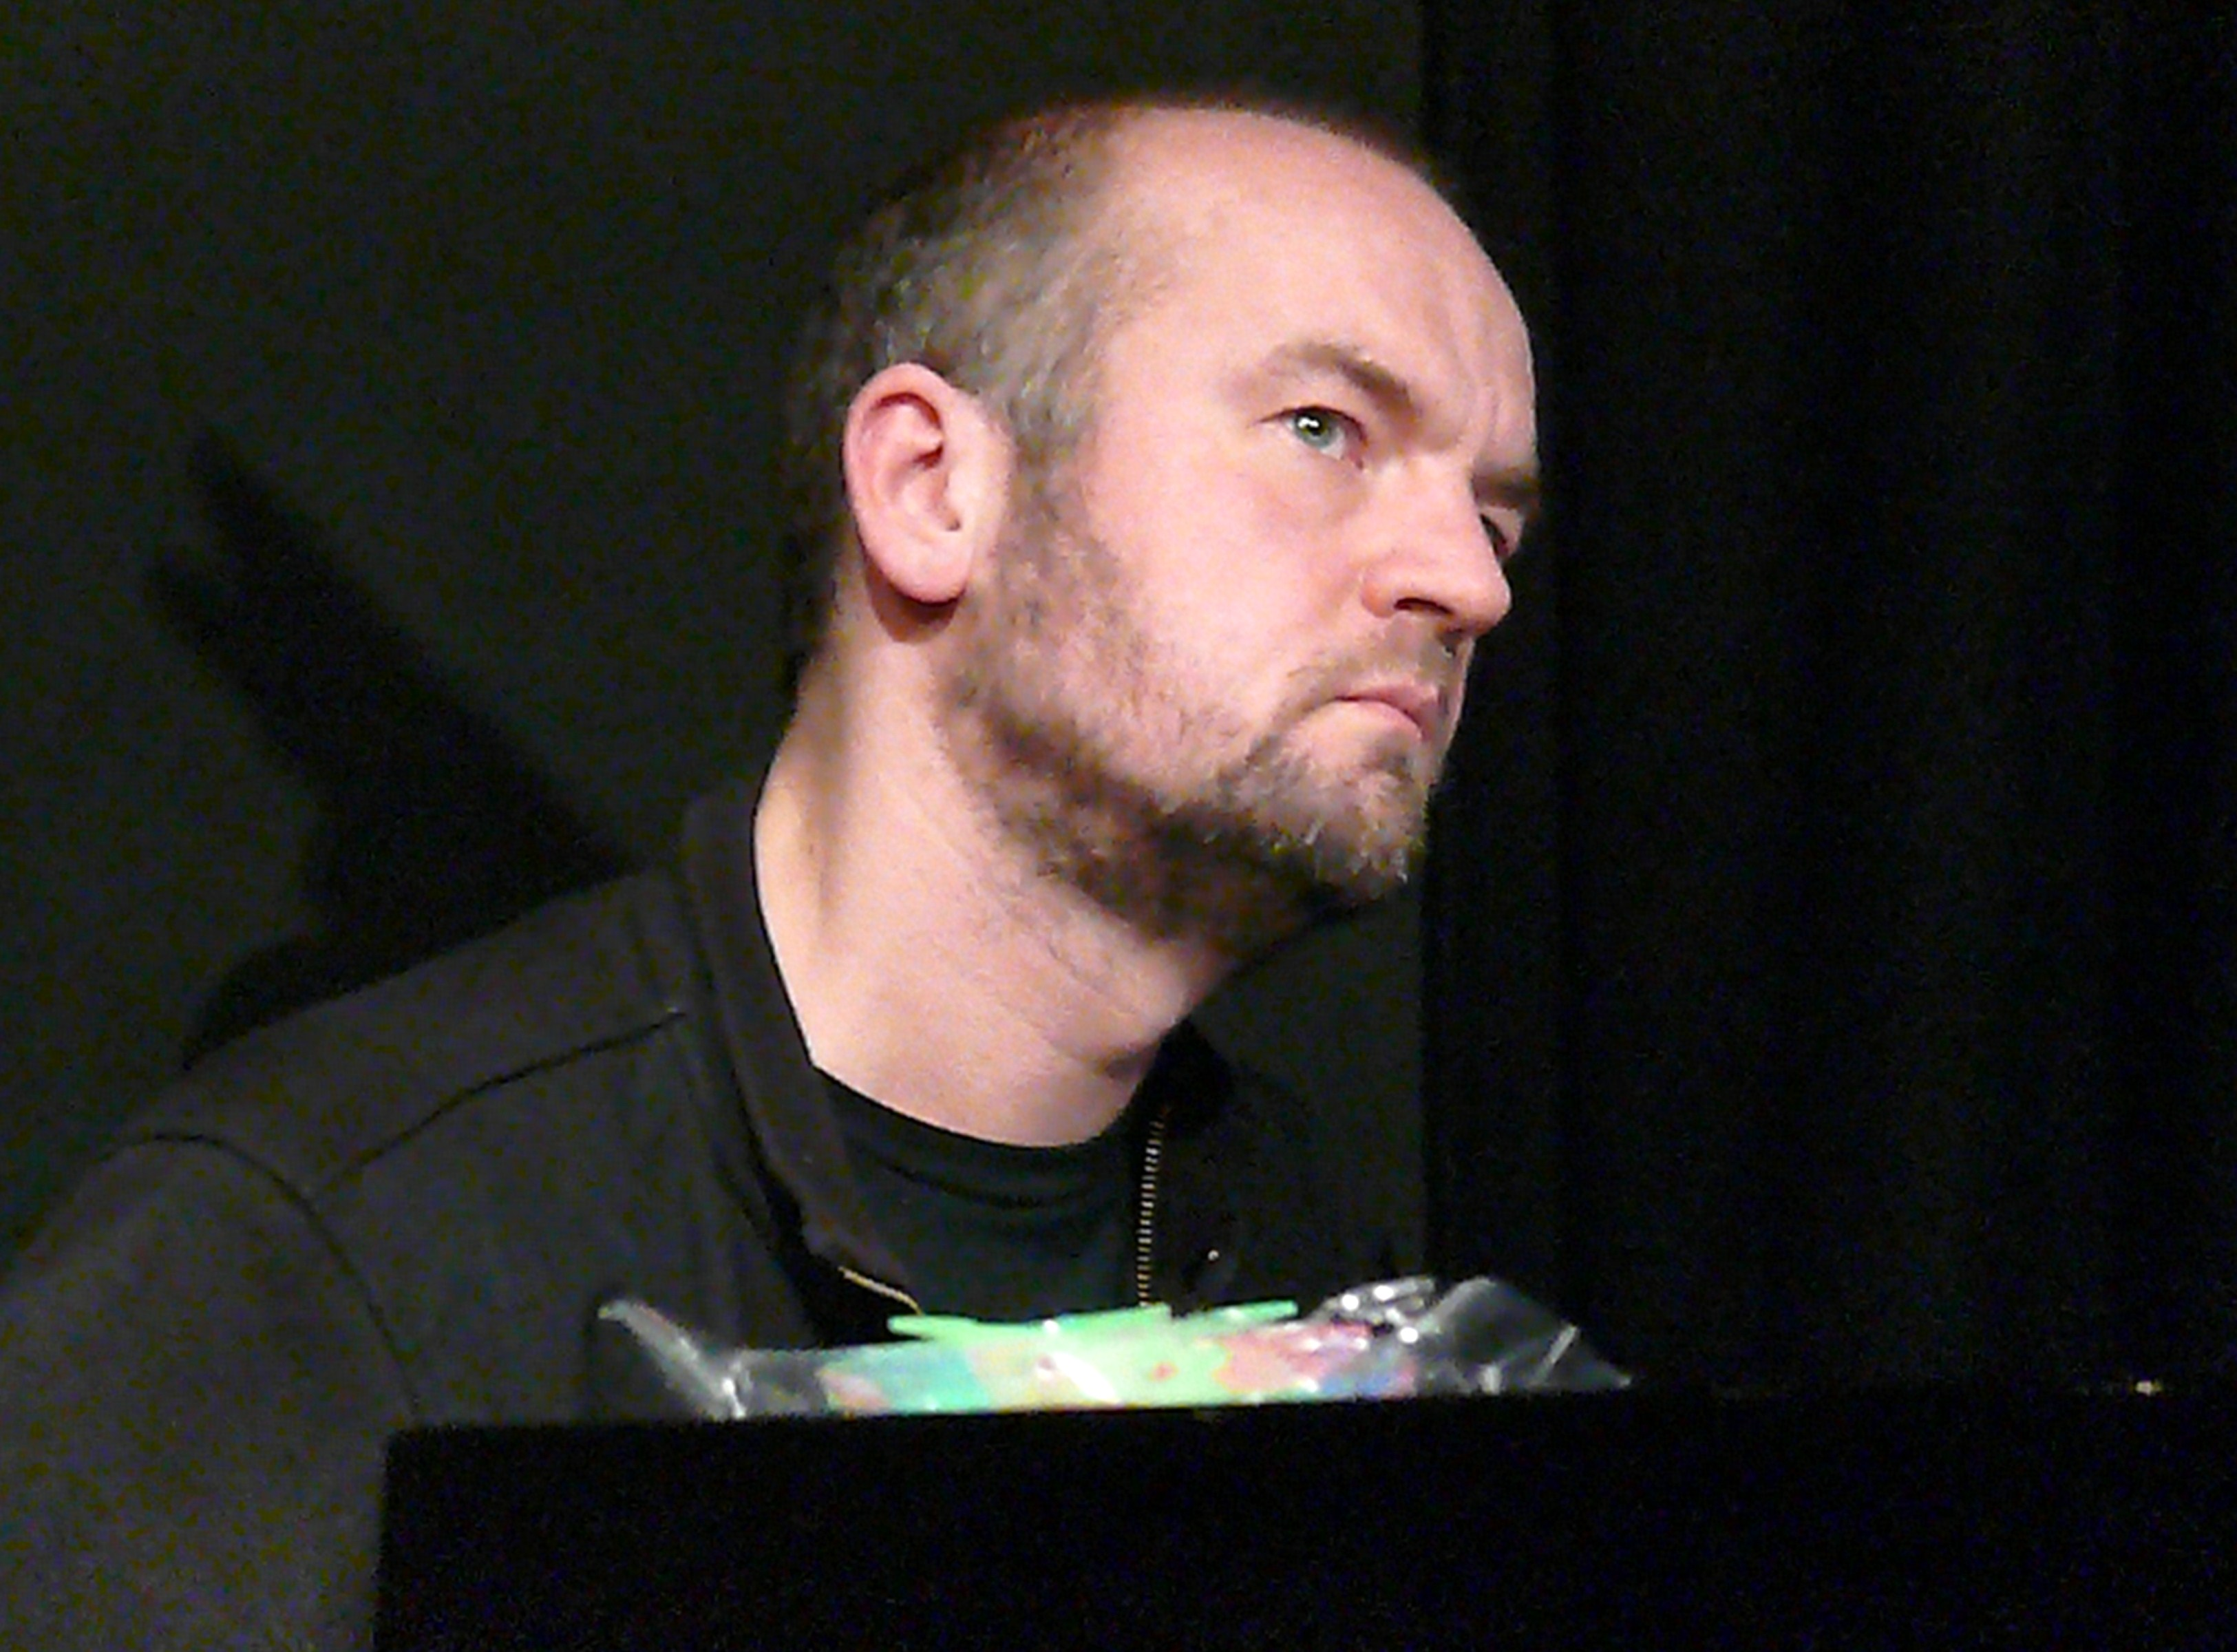 Liam Noble at the Vortex, London on 18 January 2011